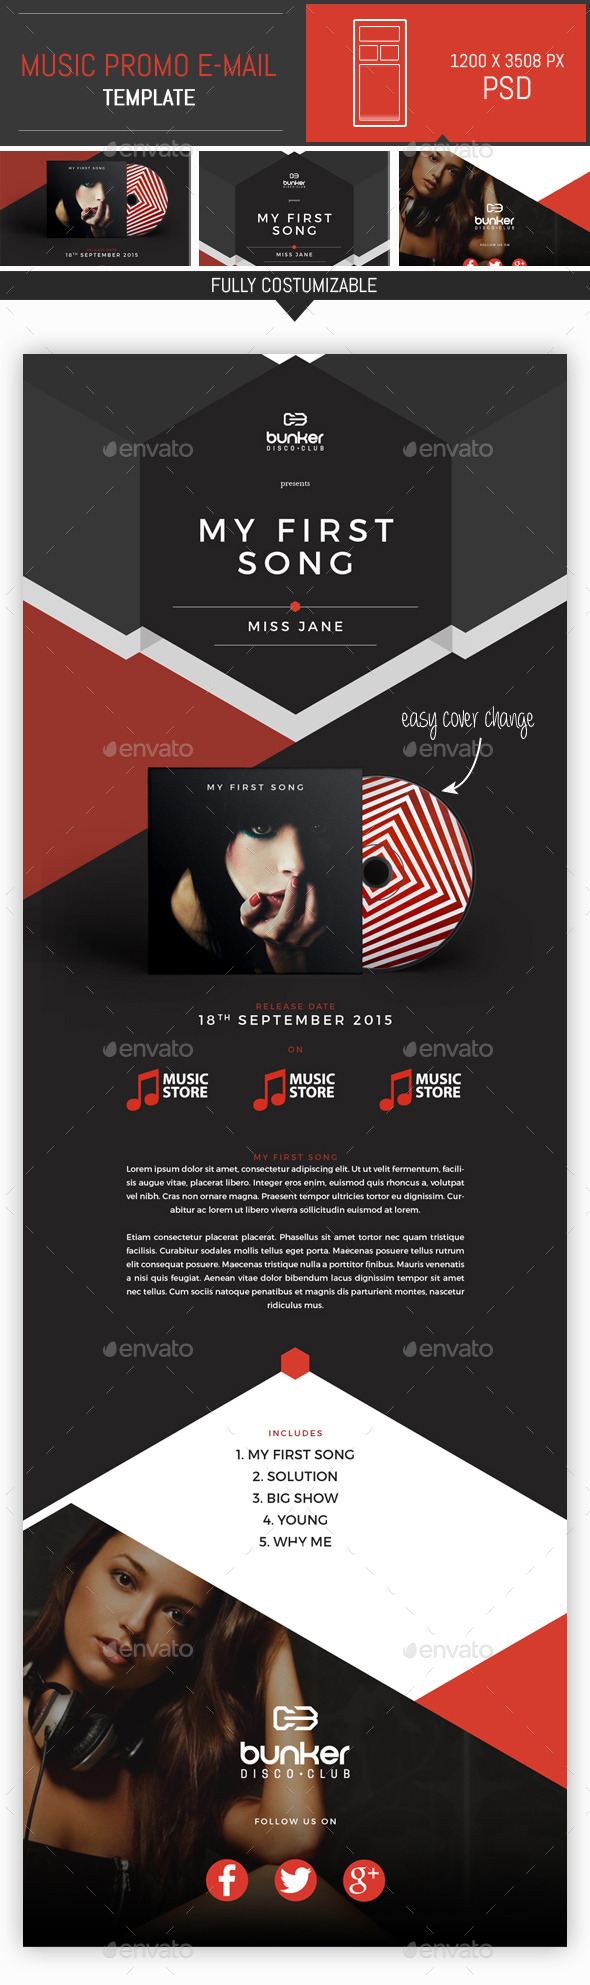 Music Promo PSD Email Template By DogmaDesign GraphicRiver - Promotional mailer template